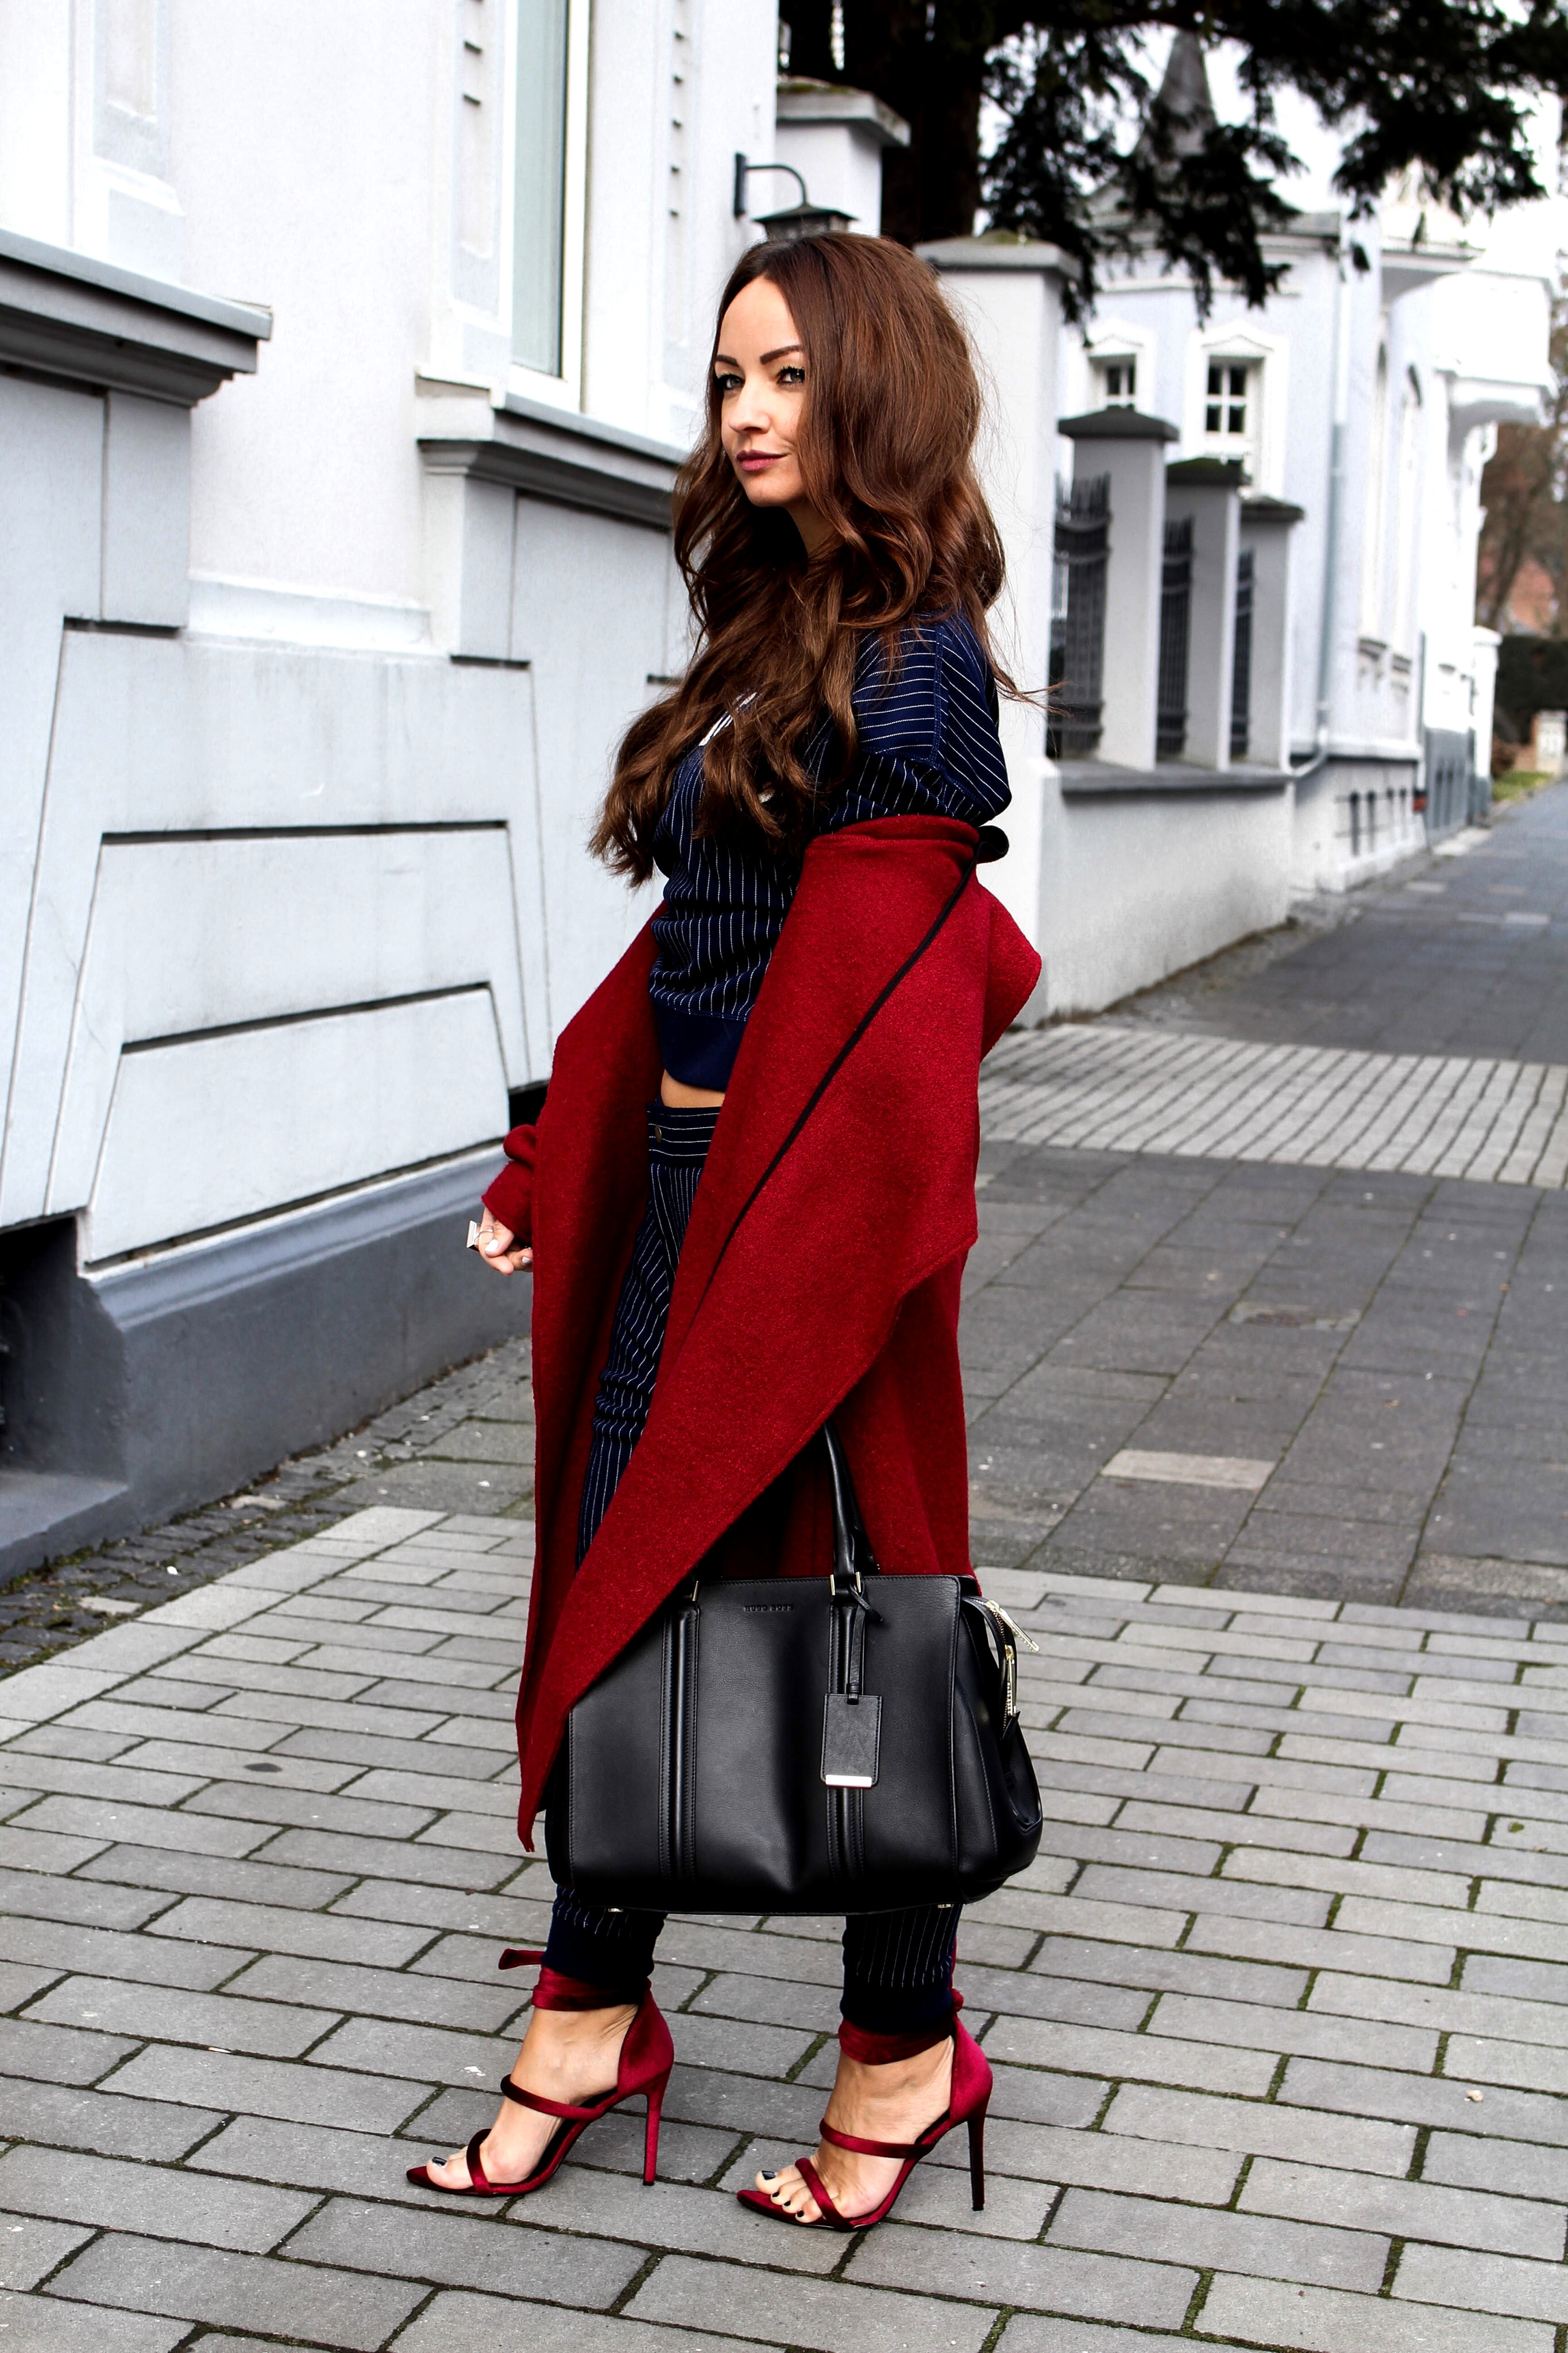 Fashioncircuz by Jenny tommy-hilfiger-blogger-look-v OUTFIT | HILFIGER JOGGINGHOSE & STATEMENT PULLI MEETS HIGH HEELS